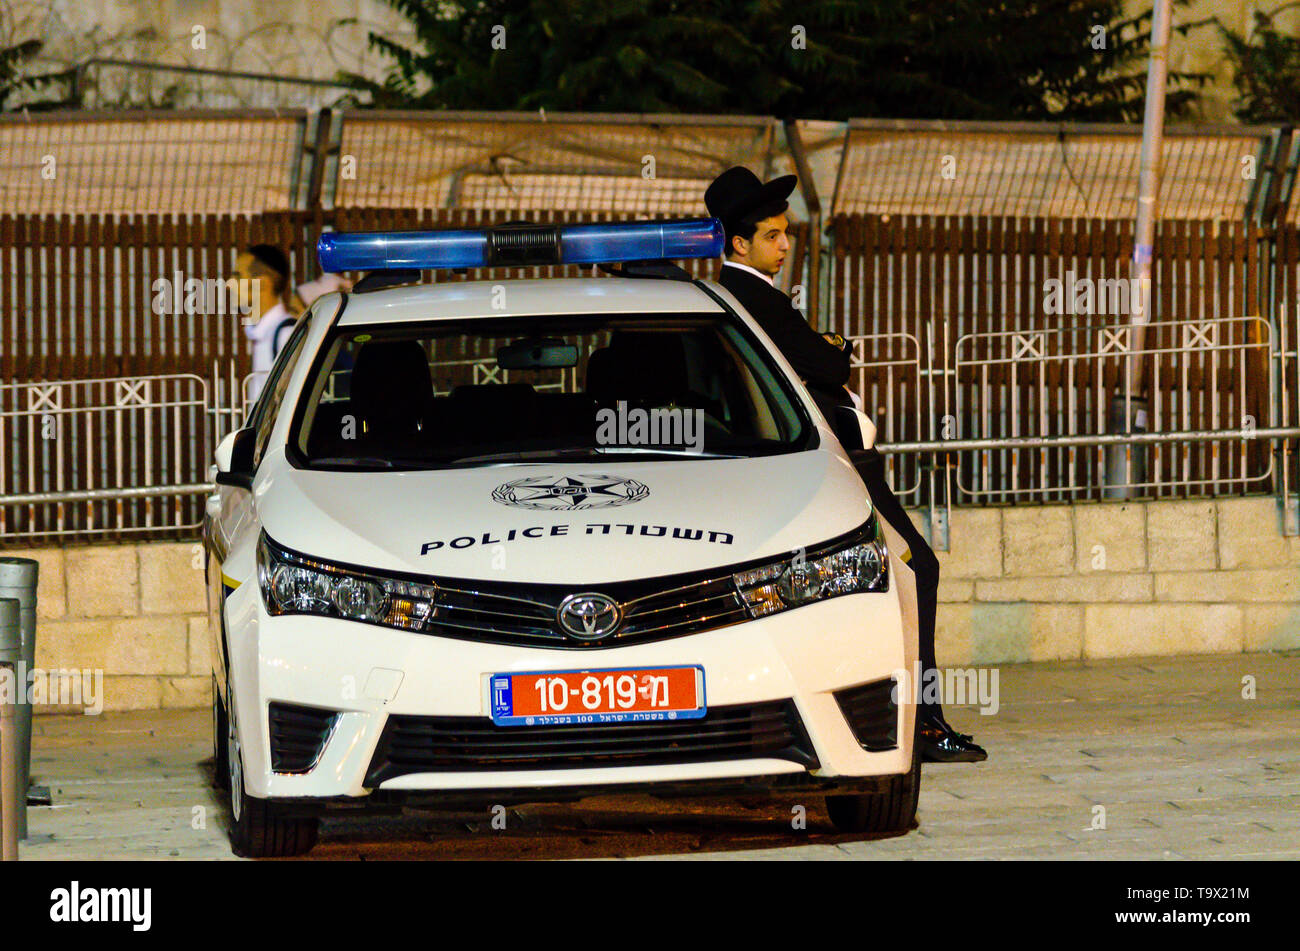 Jerusalem, Israel- August 17, 2016: Young Jewish Orthodox man leaning on police car outside the Dung Gate in the Old City of Jerusalem, Israel - Stock Image